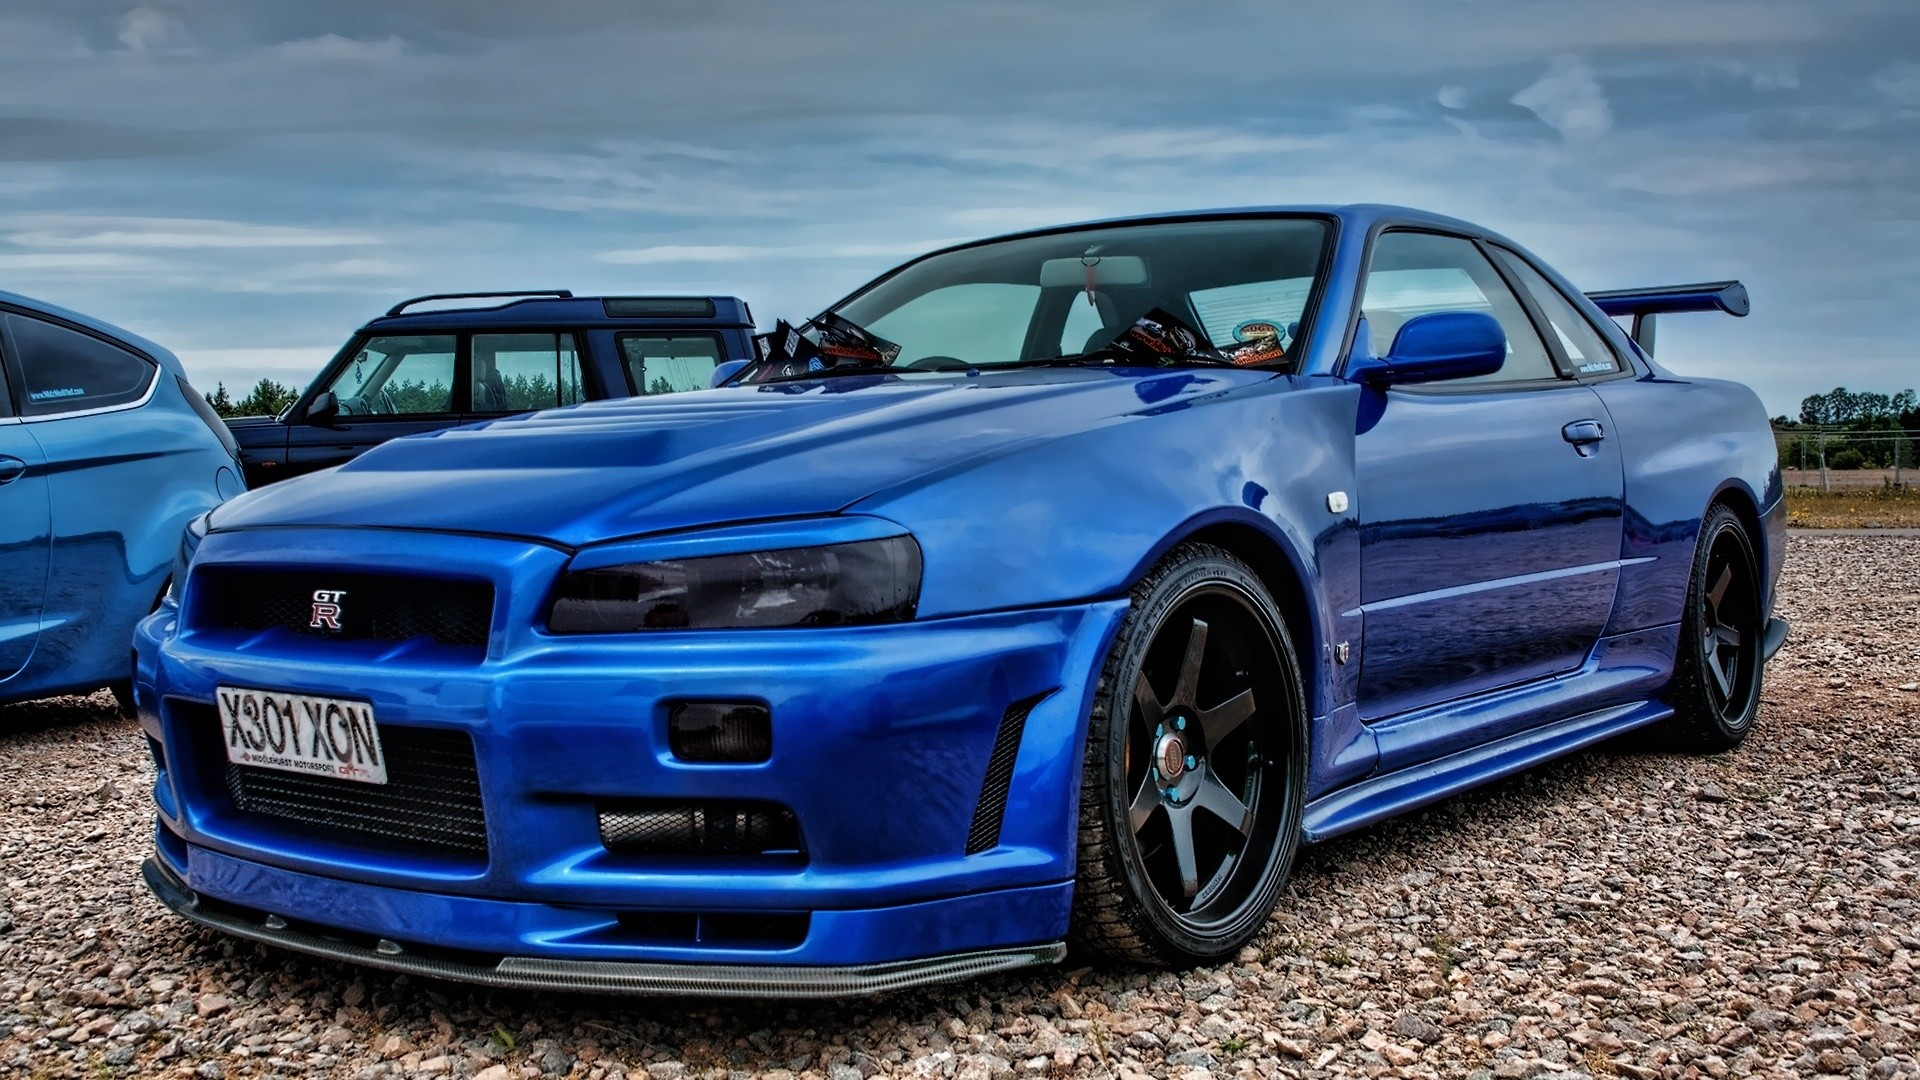 Nissan skyline gt r r34 wallpapers 70 images - Nissan gtr hd wallpaper ...